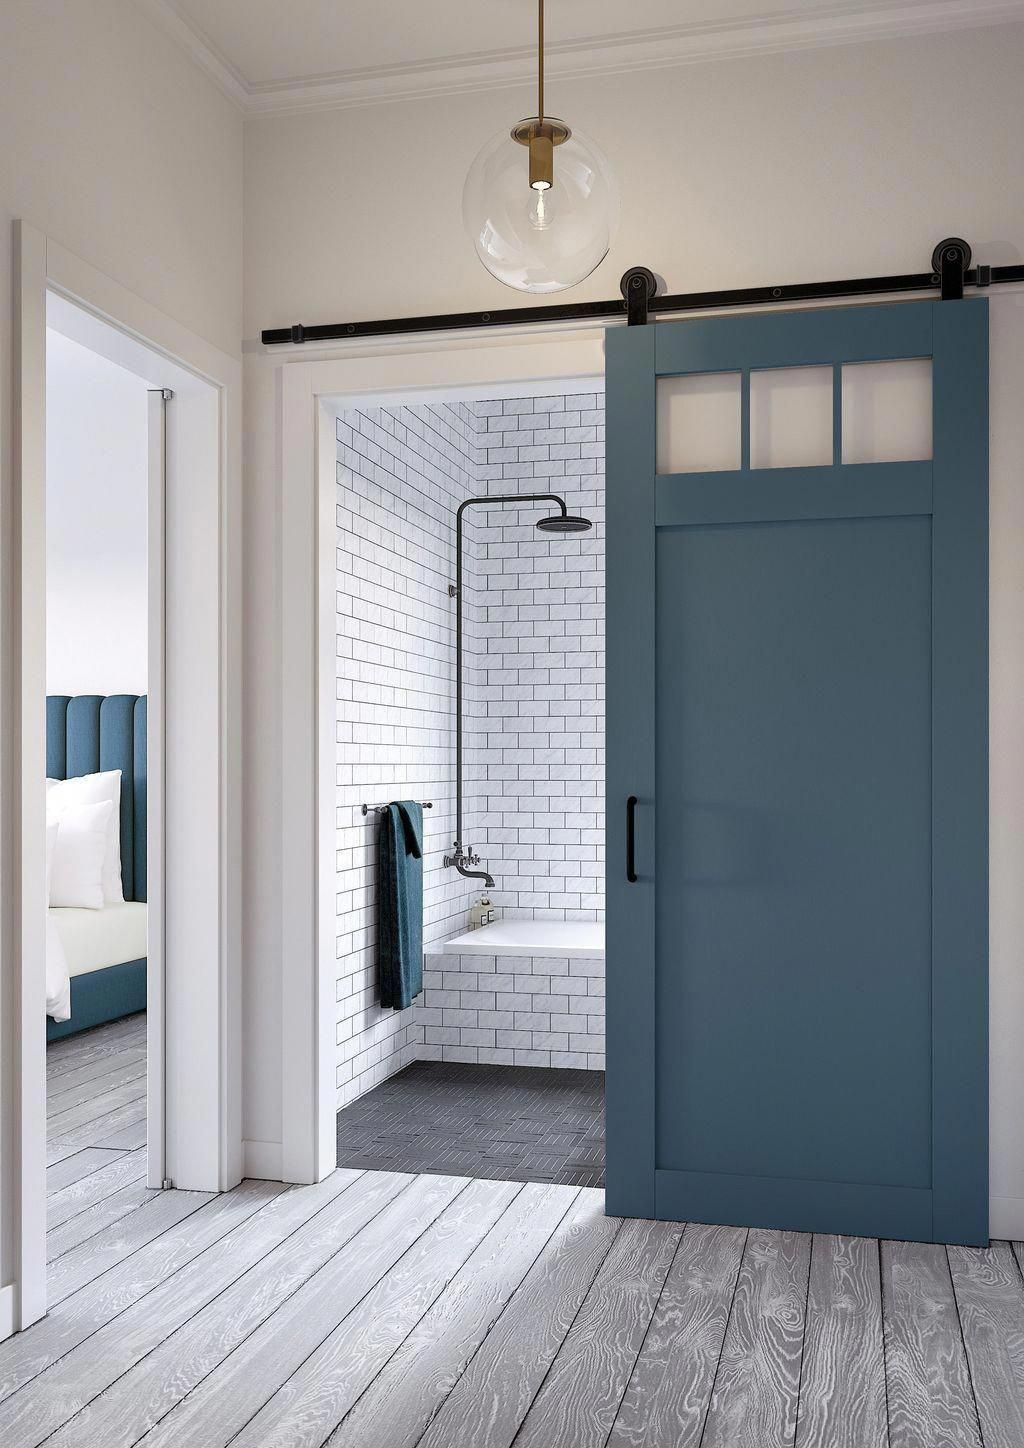 Astonishing Cheap Interior Barn Doors Look At Our Story For A Lot More Tips And Hints Cheapint In 2020 With Images Sliding Doors Interior Barn Doors Sliding Garage Door Design